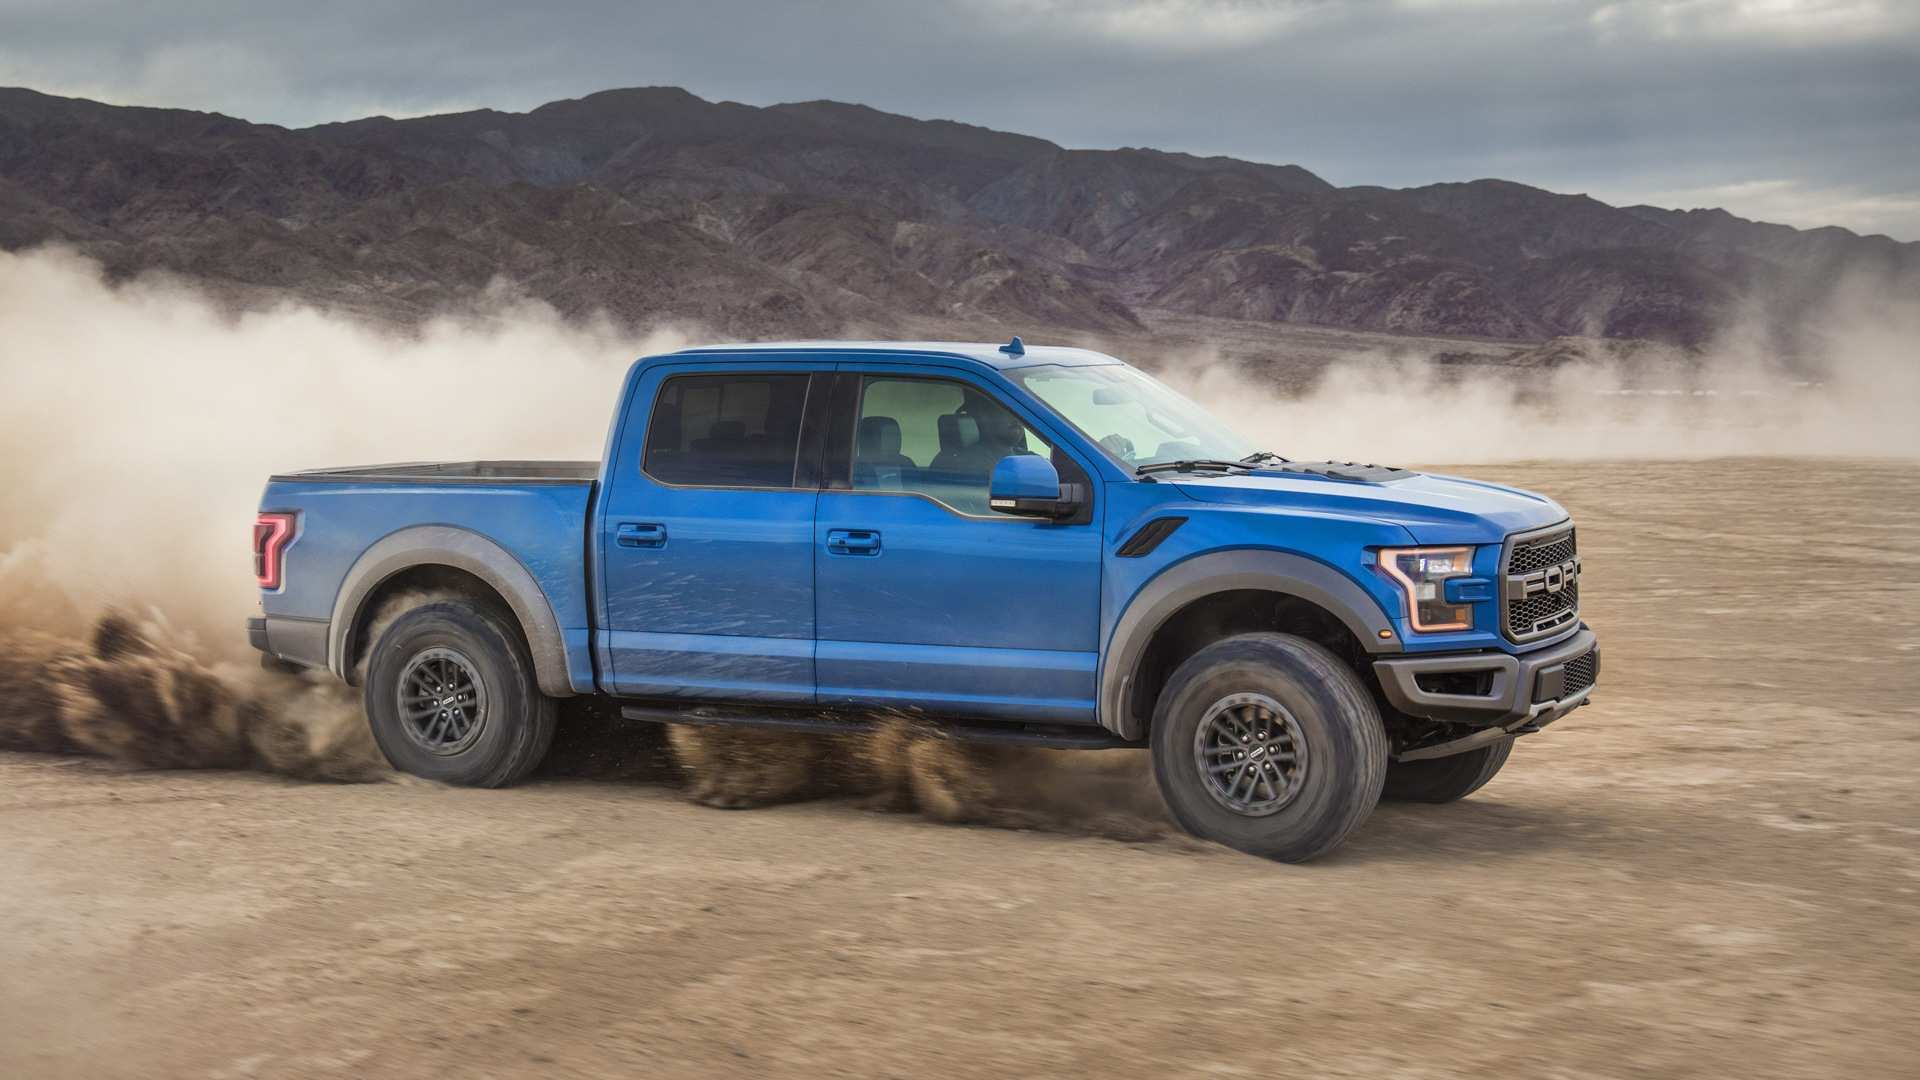 66 New 2019 Ford Velociraptor Price Redesign and Concept by 2019 Ford Velociraptor Price